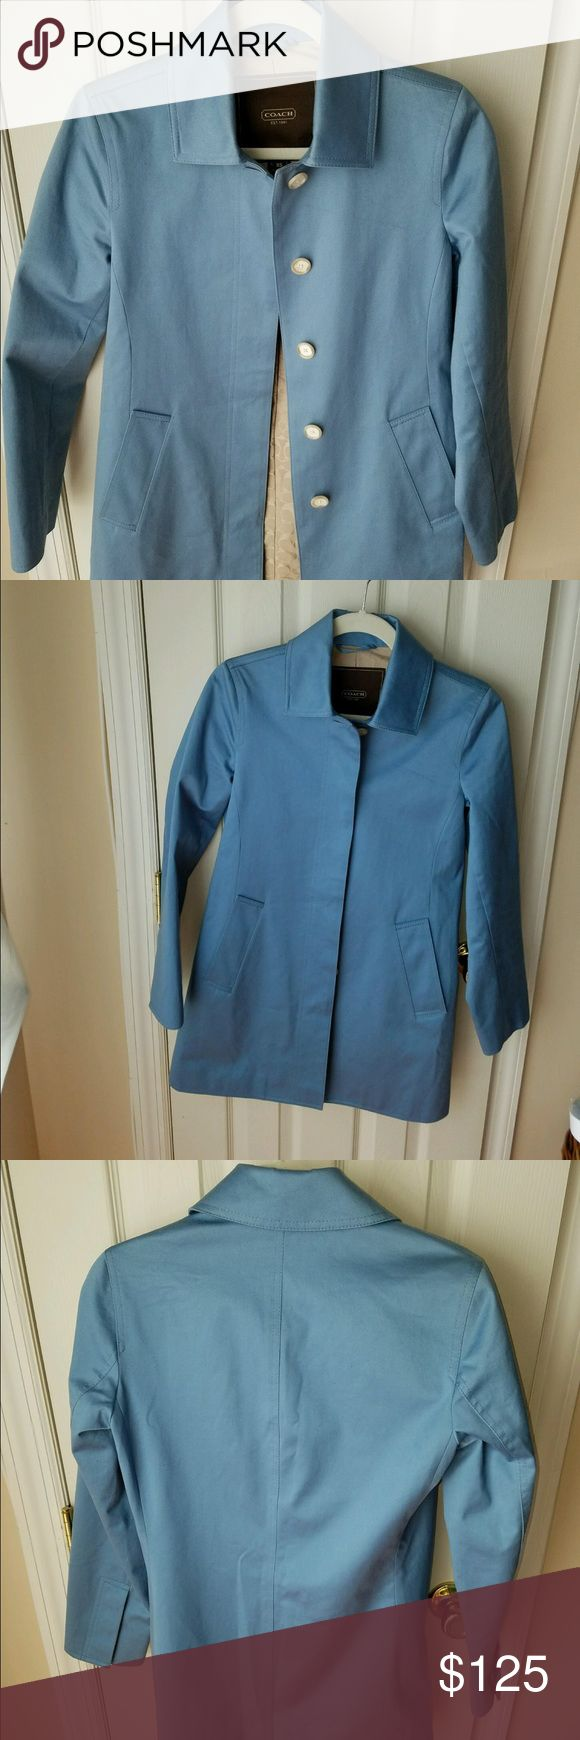 Coach Trench Coat Single Breasted - Cornflower XS COACH Trench Coat in Cornflower Blue (EUC)! Perfect for Spring ! Size: XS Coach Jackets & Coats Trench Coats